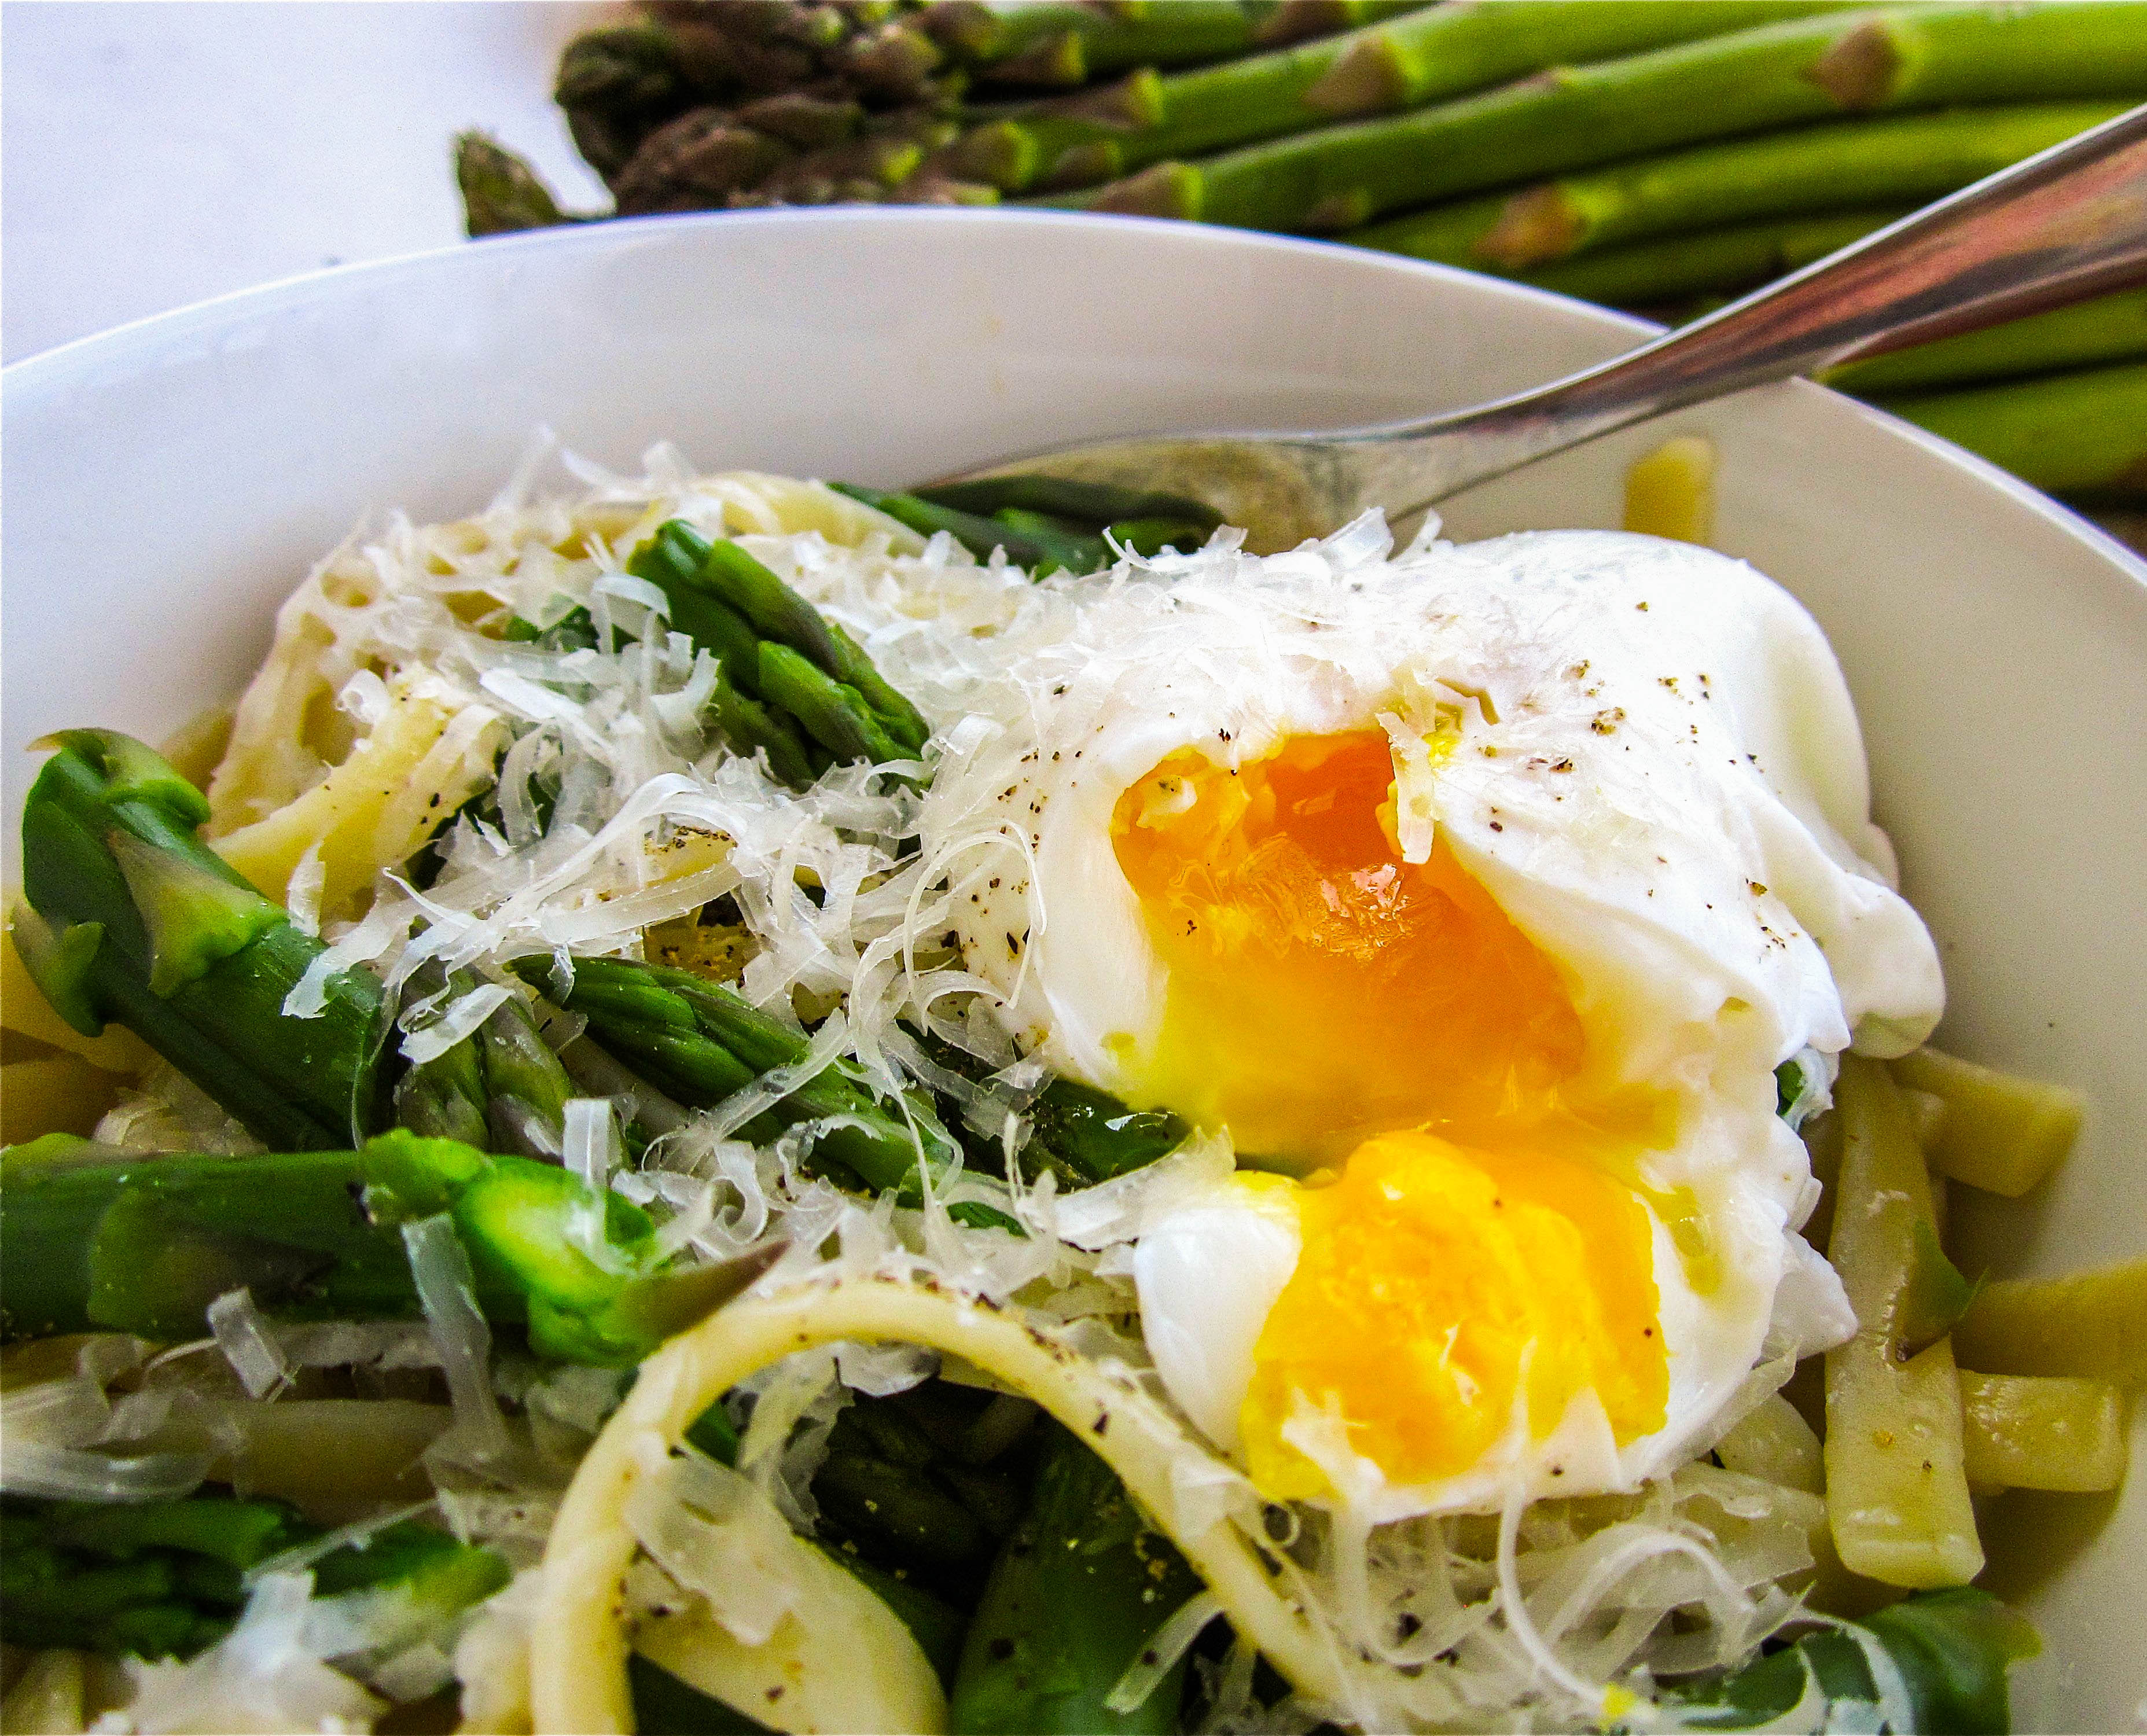 Asparagus and Poached Eggs over Pasta - The Food Charlatan